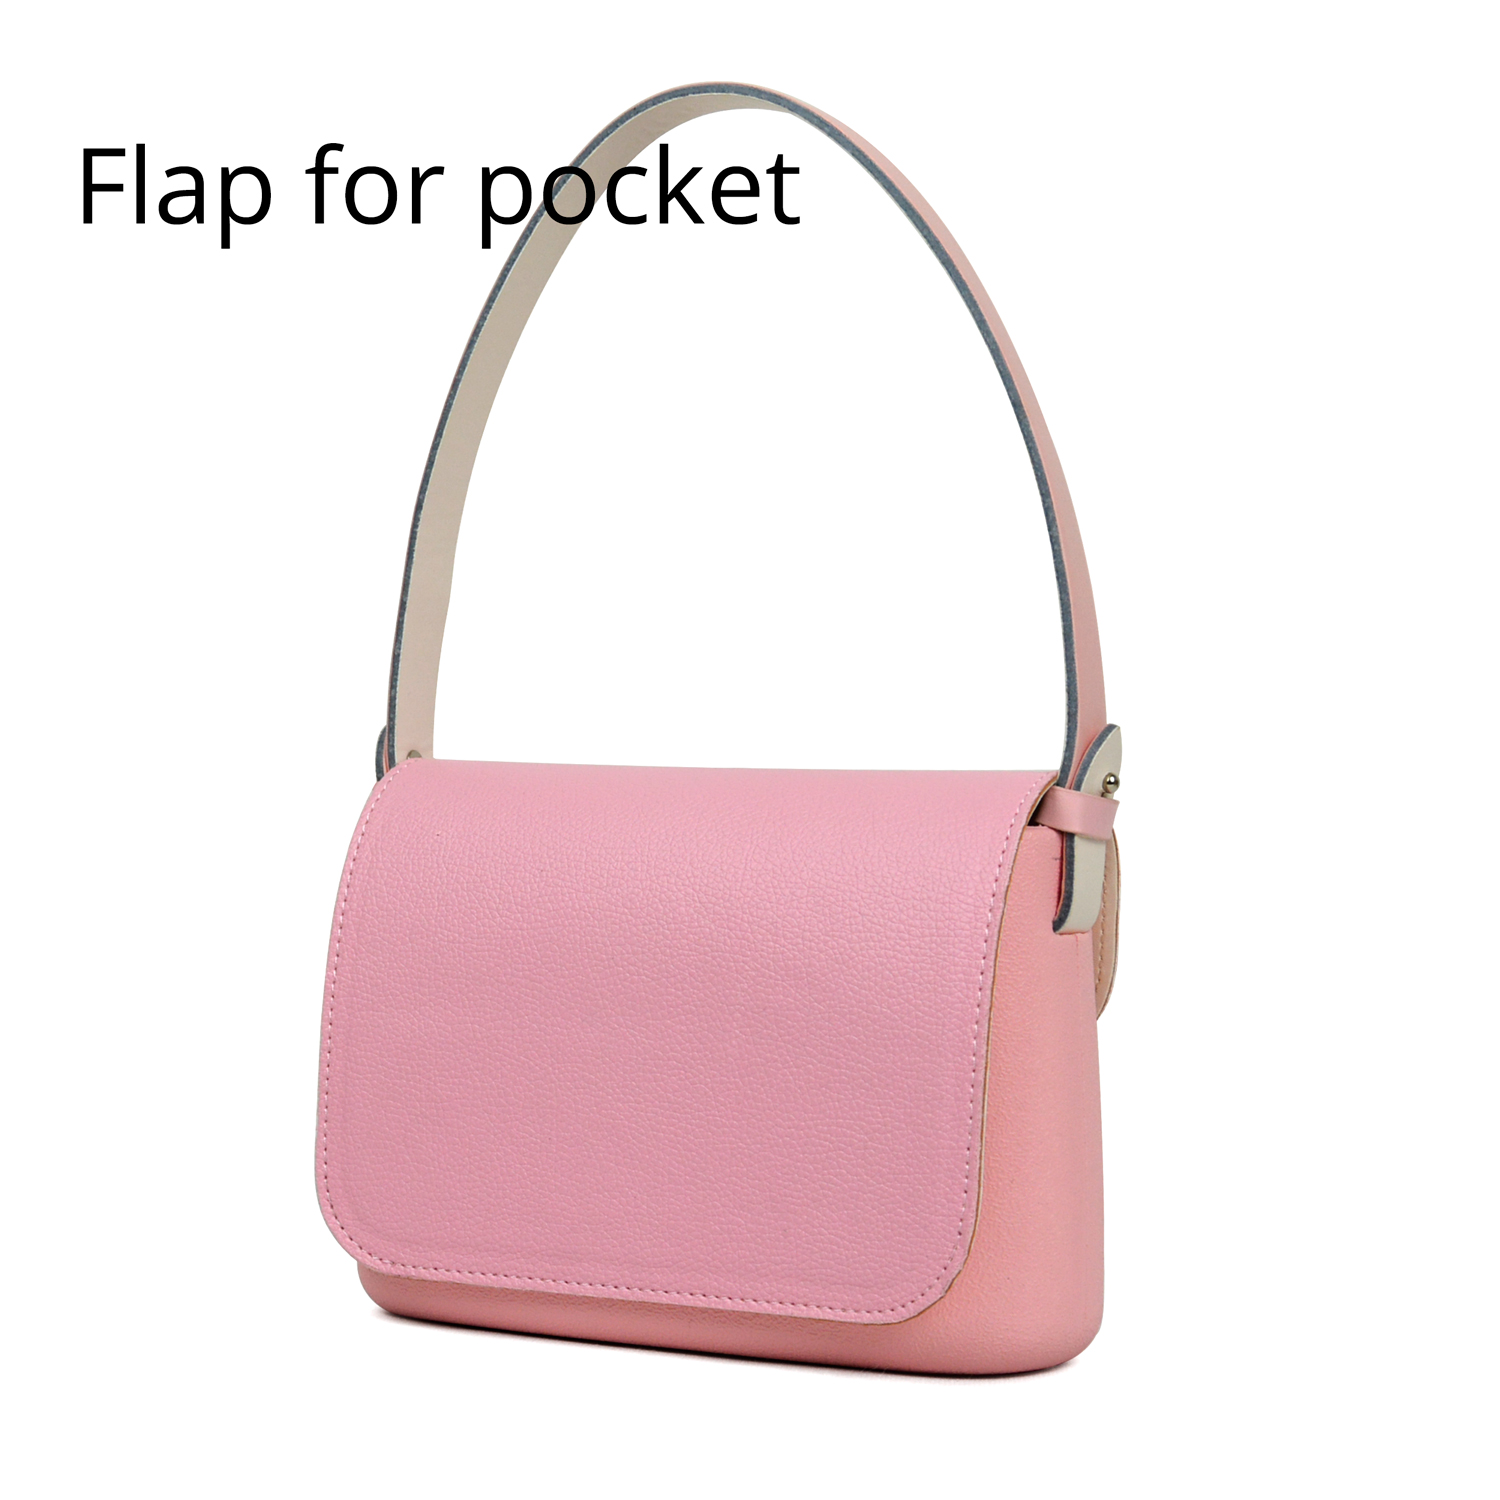 2018 Lichee Pattern PU Leather Flap Replacement Cover Lid Clamshell With Magnetic Lock Snap Fastener For Obag O Pocket O Bag